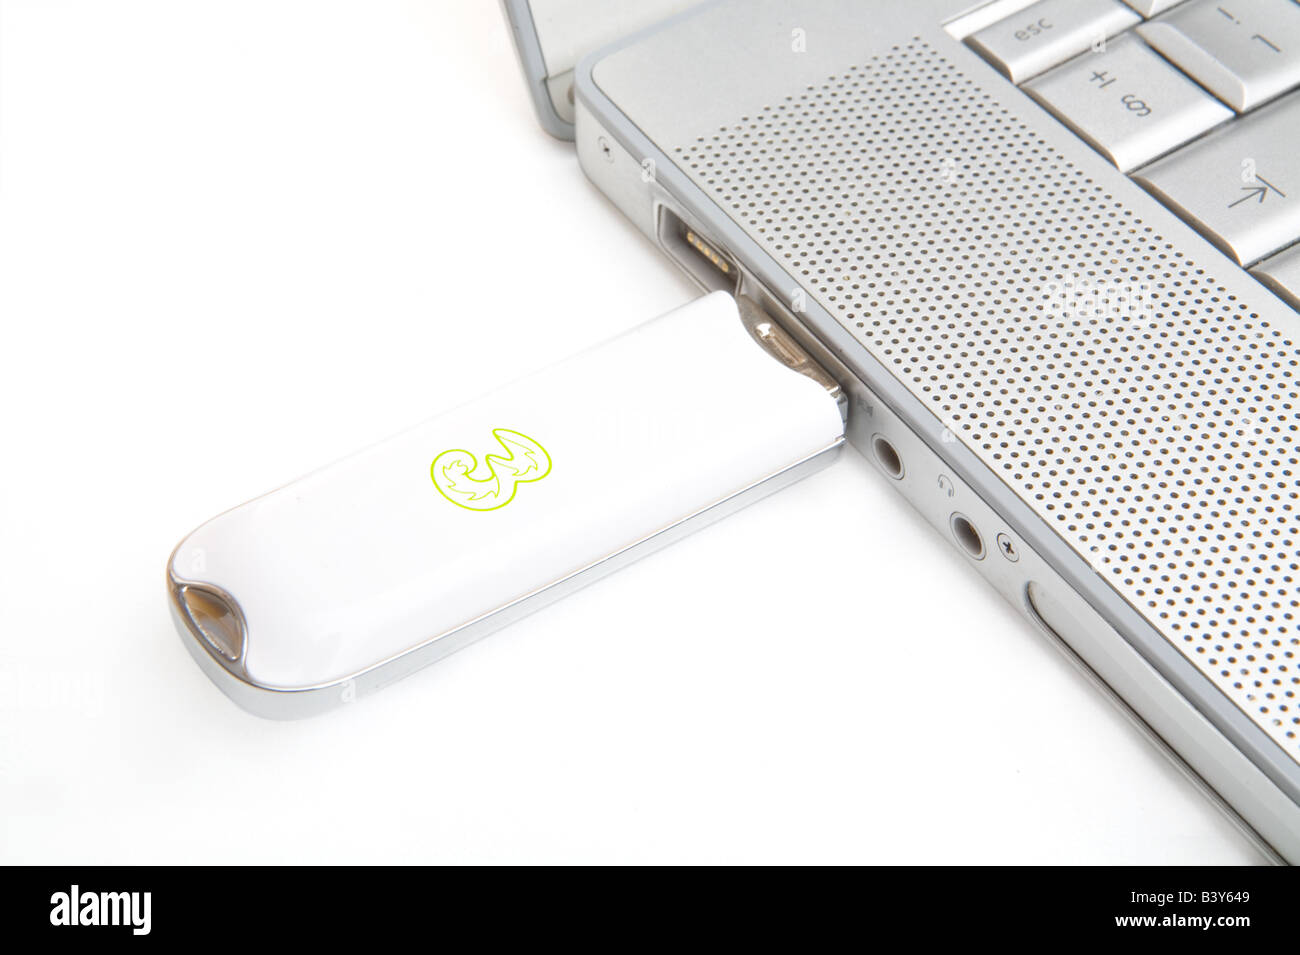 A Three Mobile wireless dongle in a MacBook Pro Stock Photo